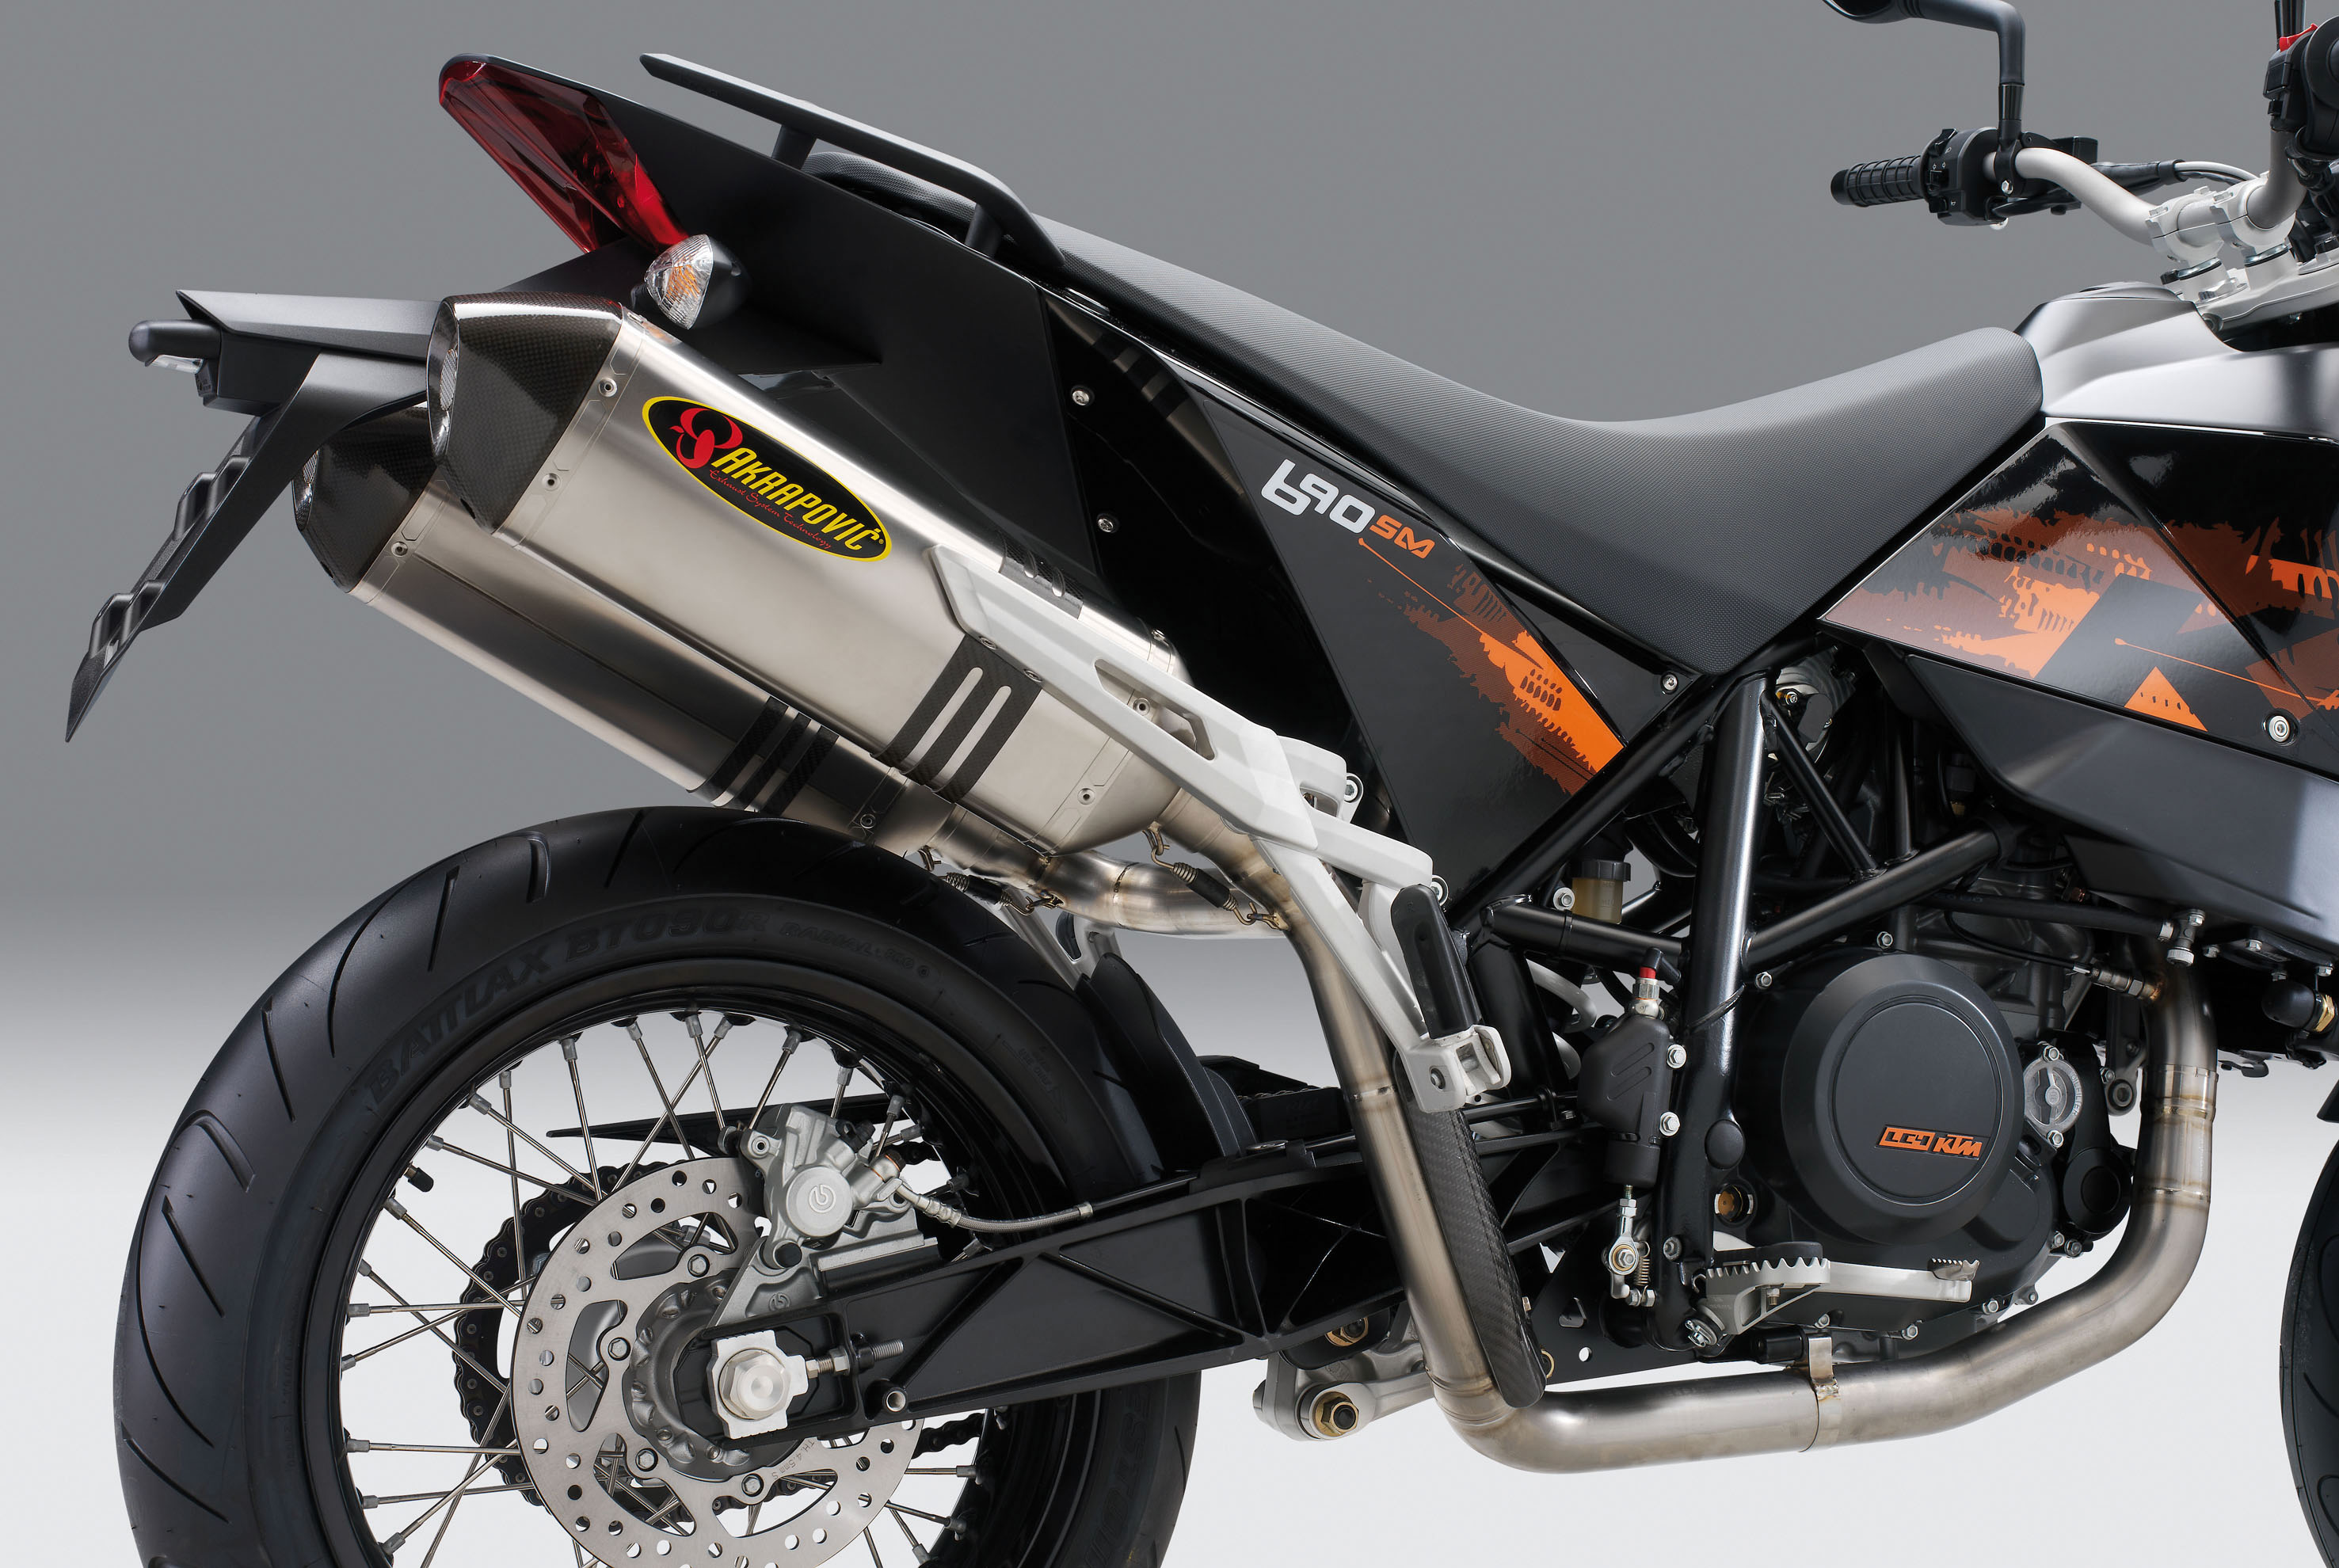 Can You Ride A Ktm 690sm With An A2 Licence